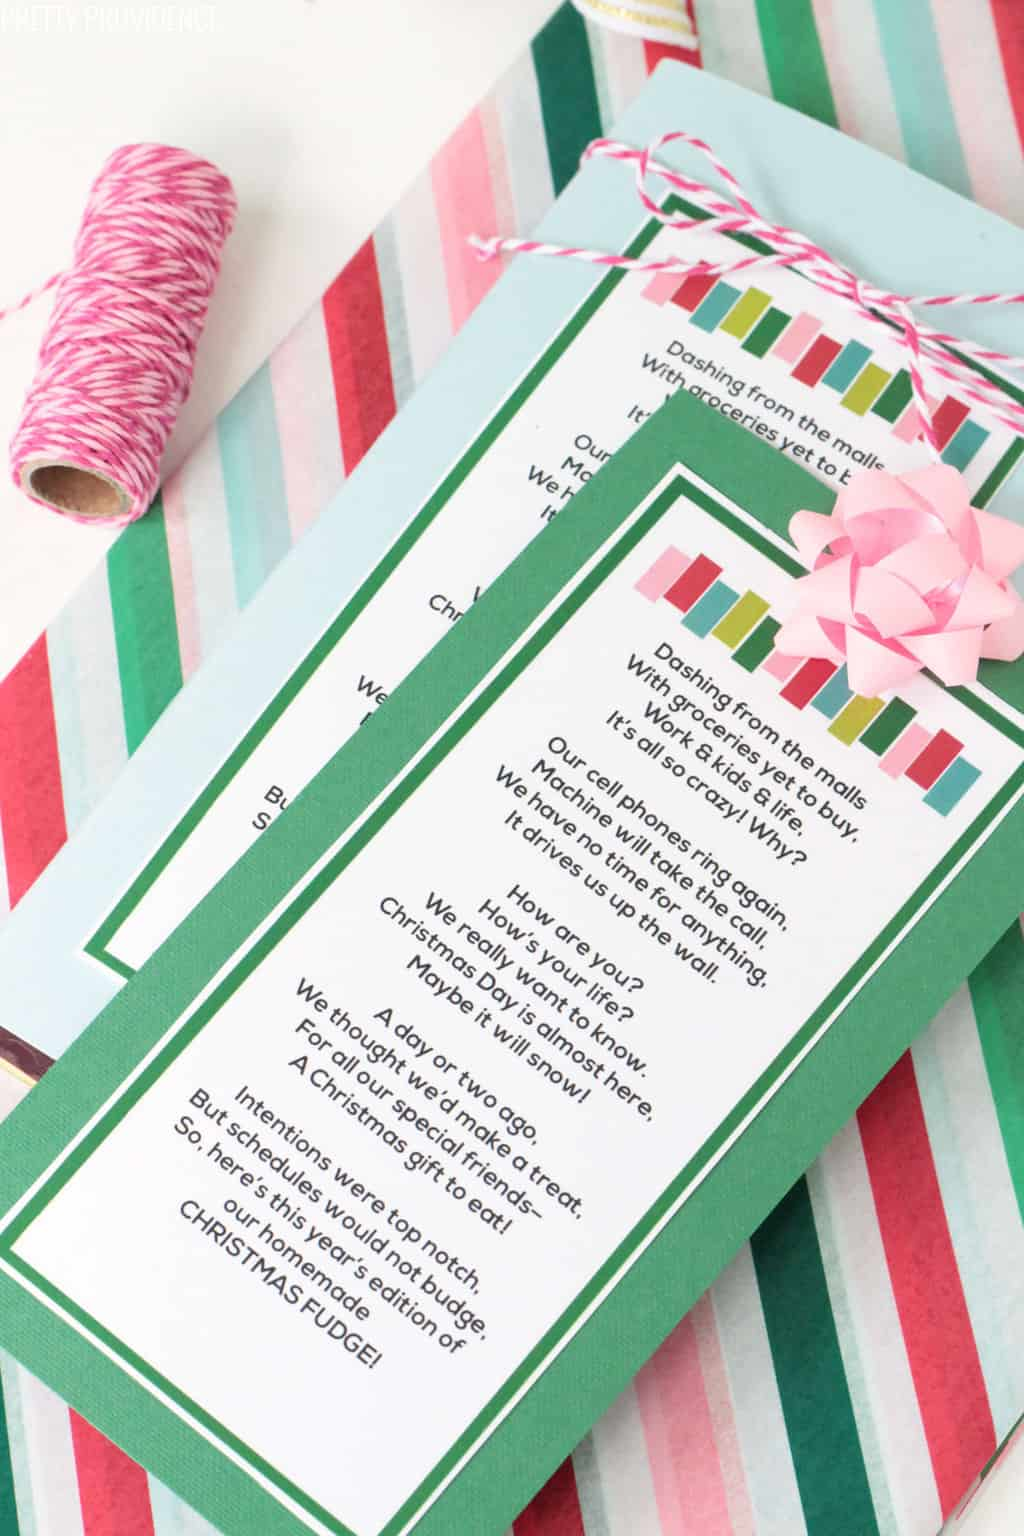 Homemade Christmas fudge neighbor gift idea with free gift tag on top, pink bow on top.